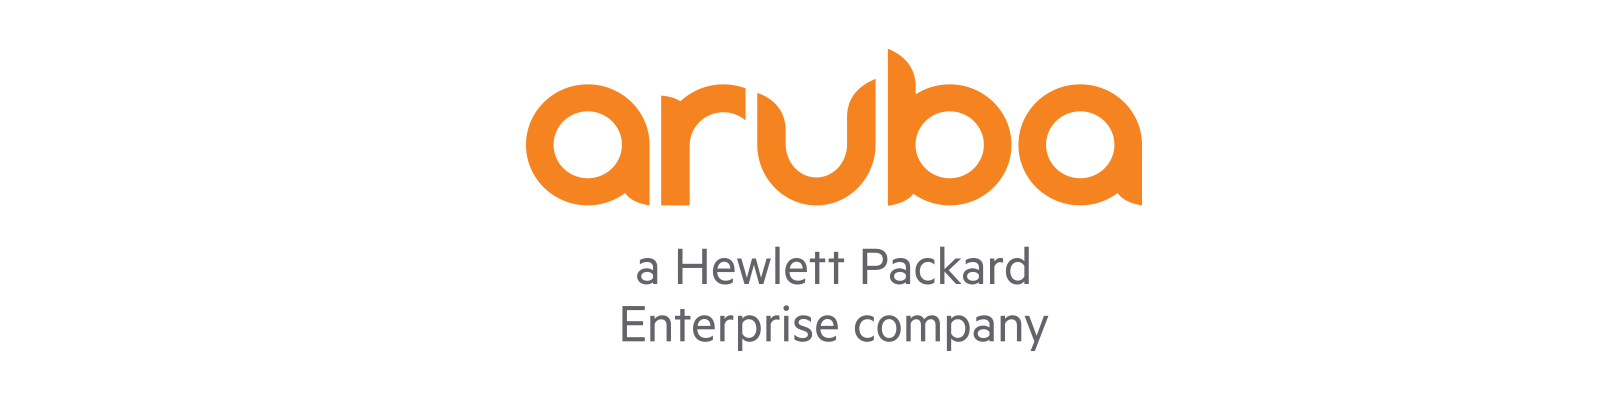 Aruba Enterprise Networking And Security Solutions